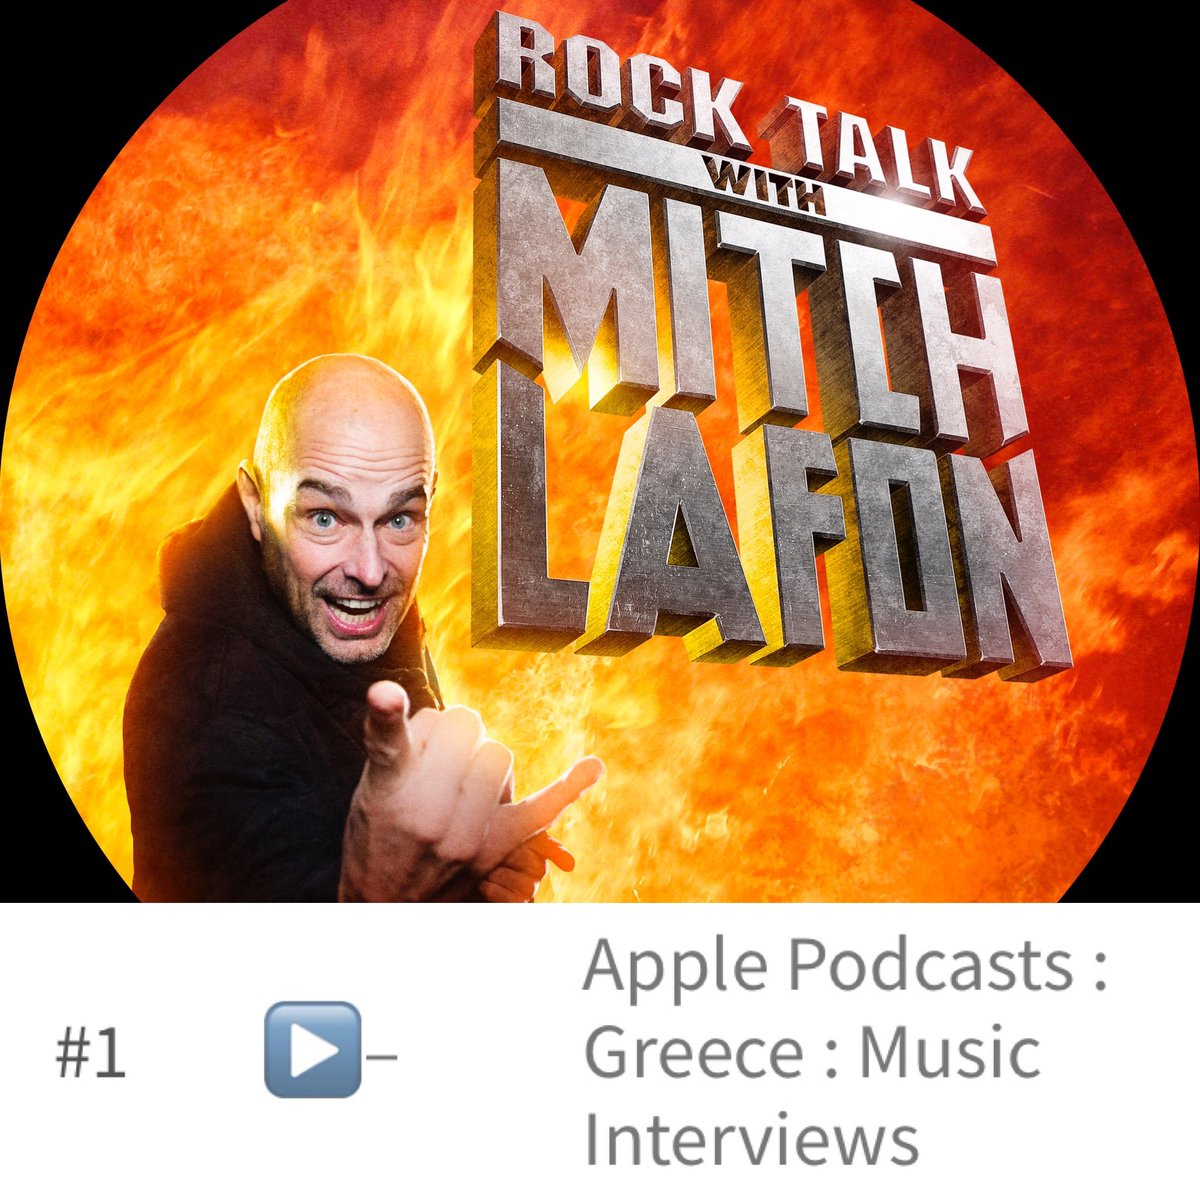 Just wanted to thank all my listeners in Greece for making Rock Talk With Mitch Lafon #1 in your country. ευχαριστώ https://t.co/nYyhEuC7nv